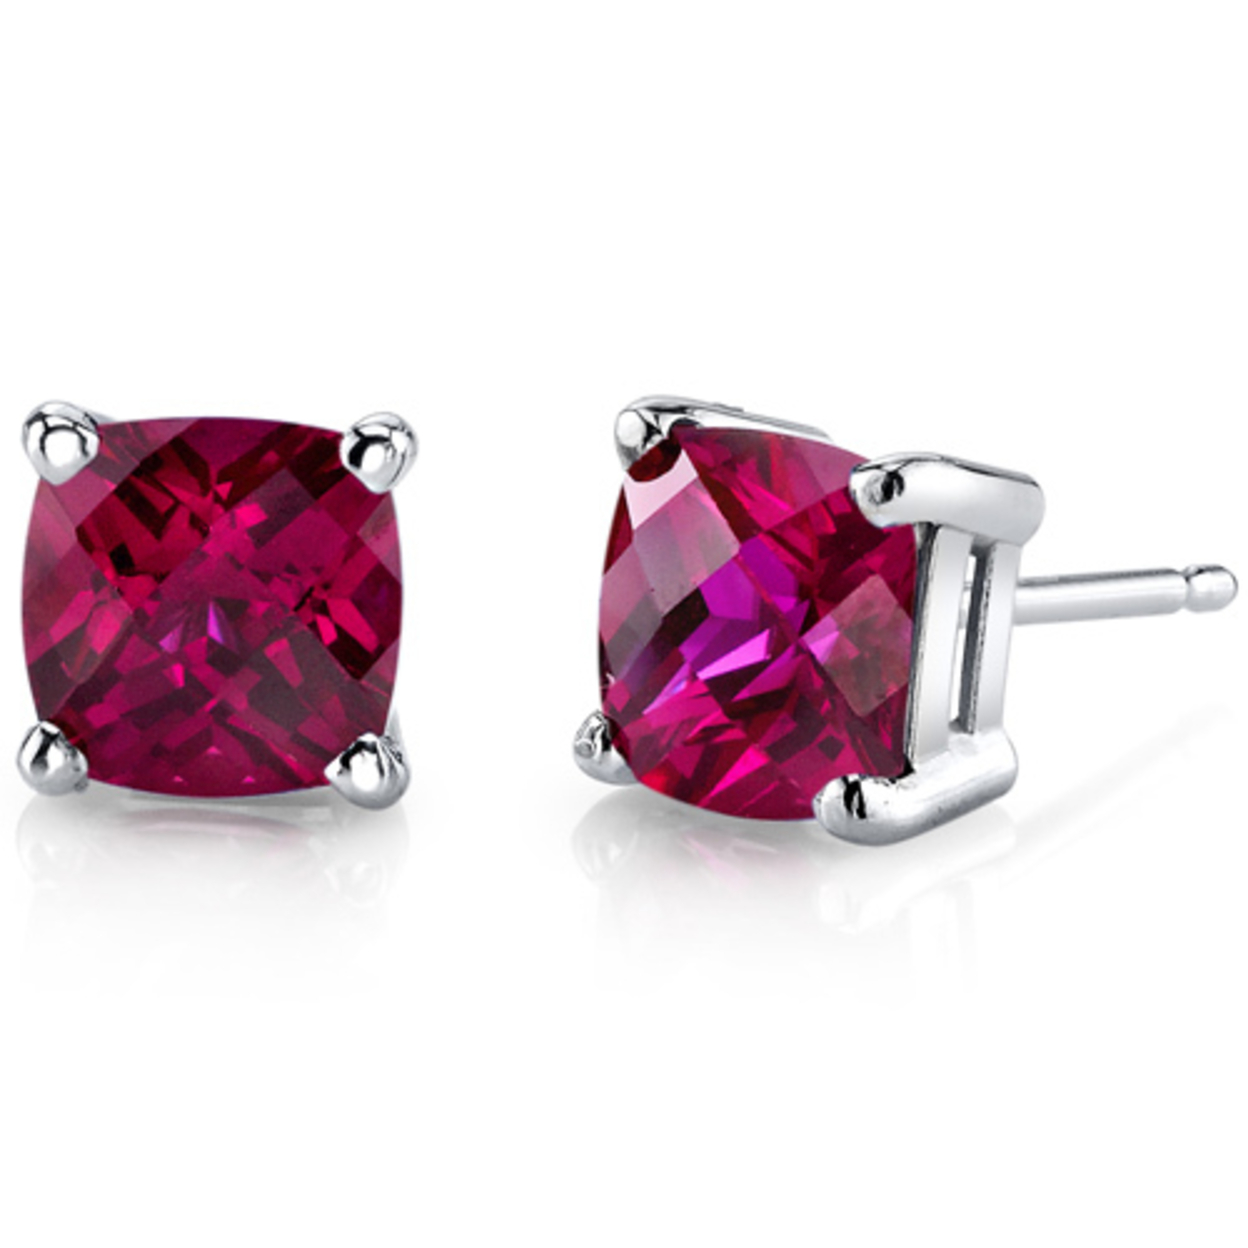 14 Karat White Gold Cushion Cut 2.50 Carats Created Ruby Stud Earrings